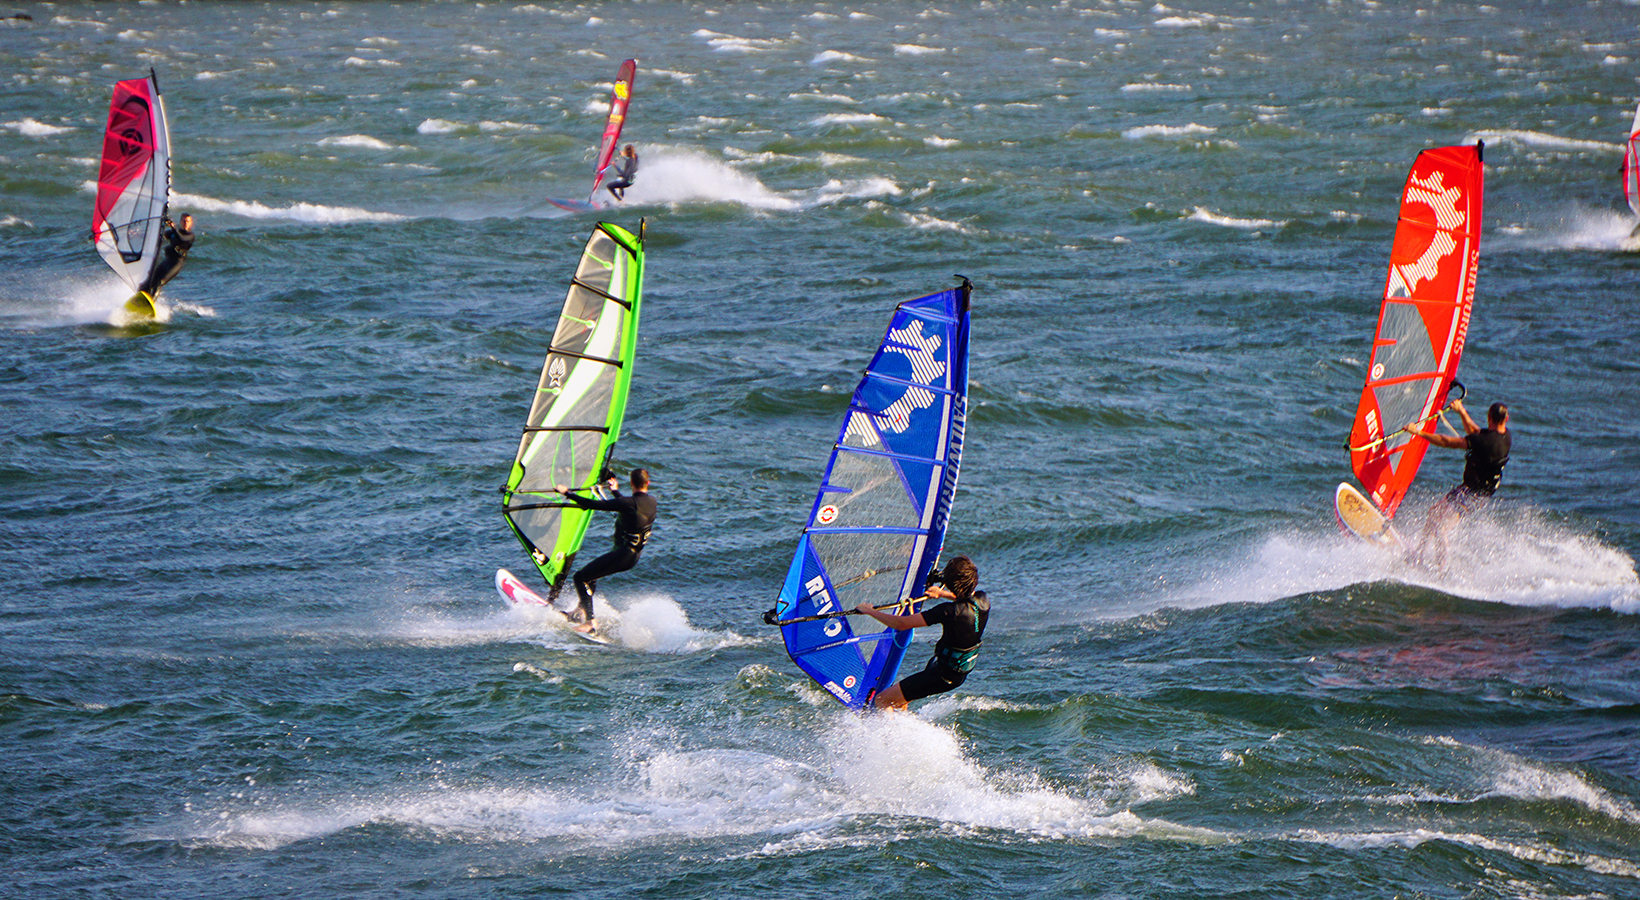 Windsurfers race across the Columbia River as the wind fills their sails and their boards zip through choppy waters